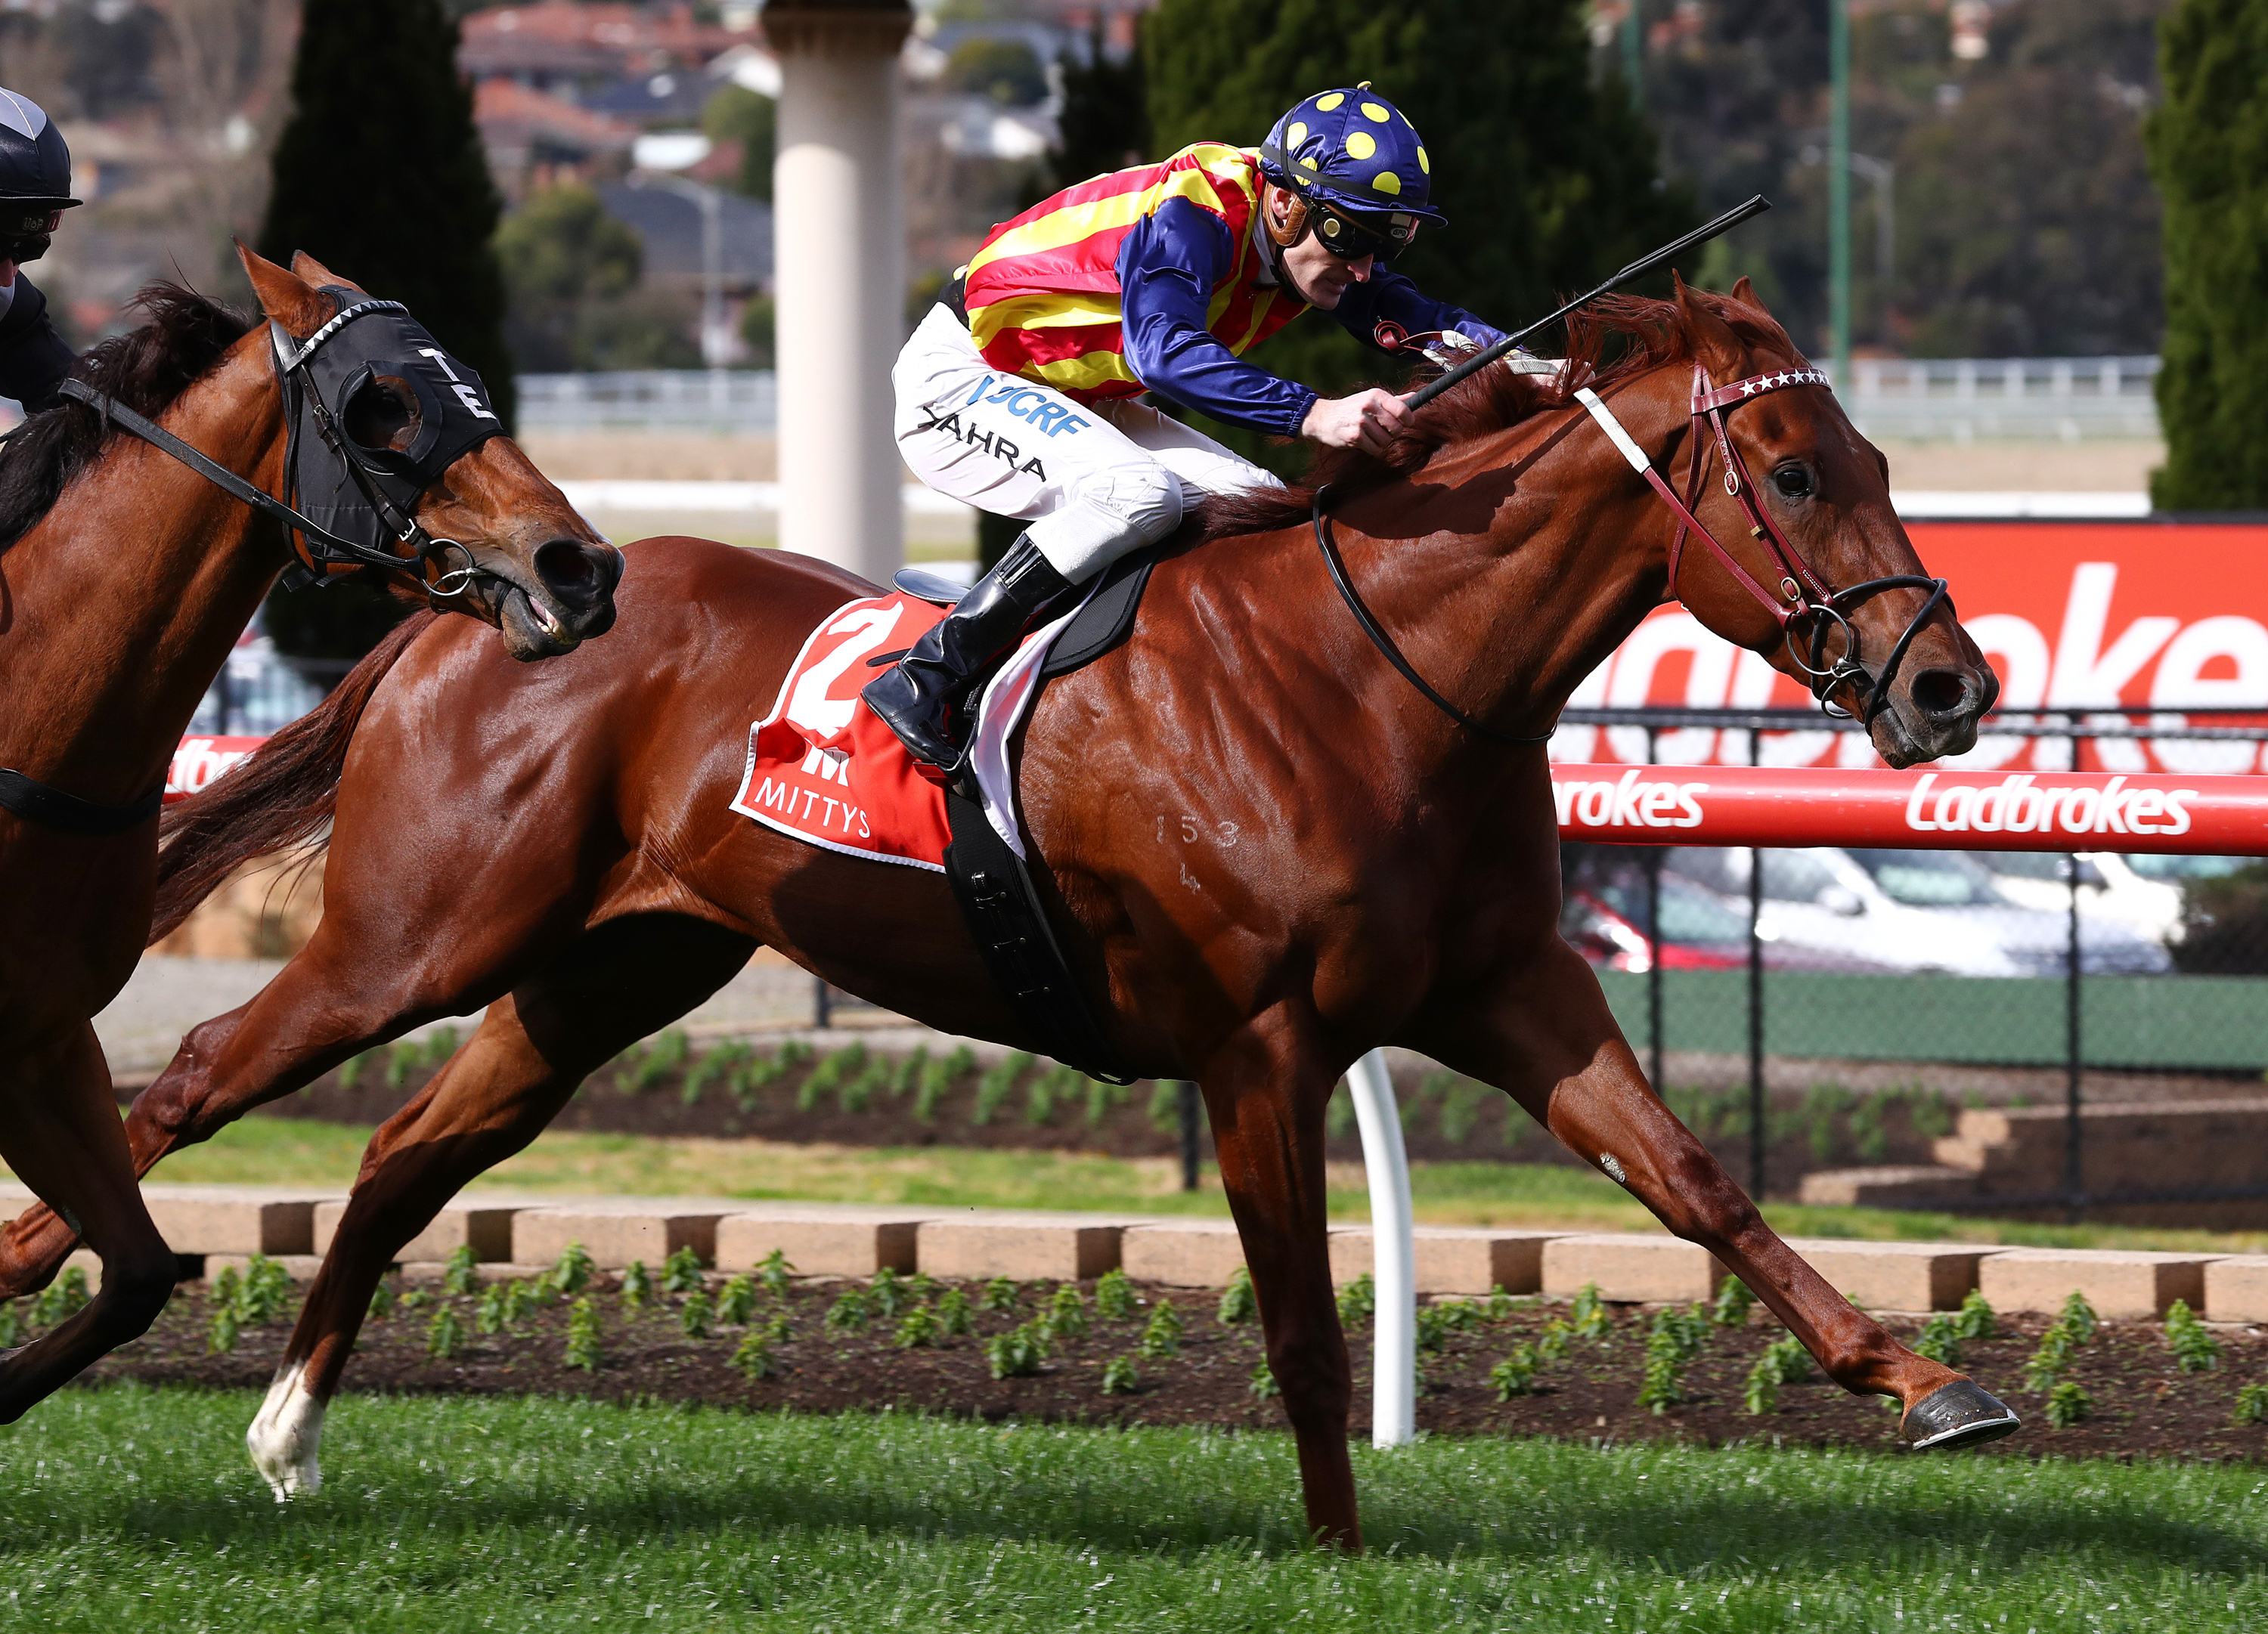 """Owners of star Darren Weir horse """"considered taking it to court"""""""